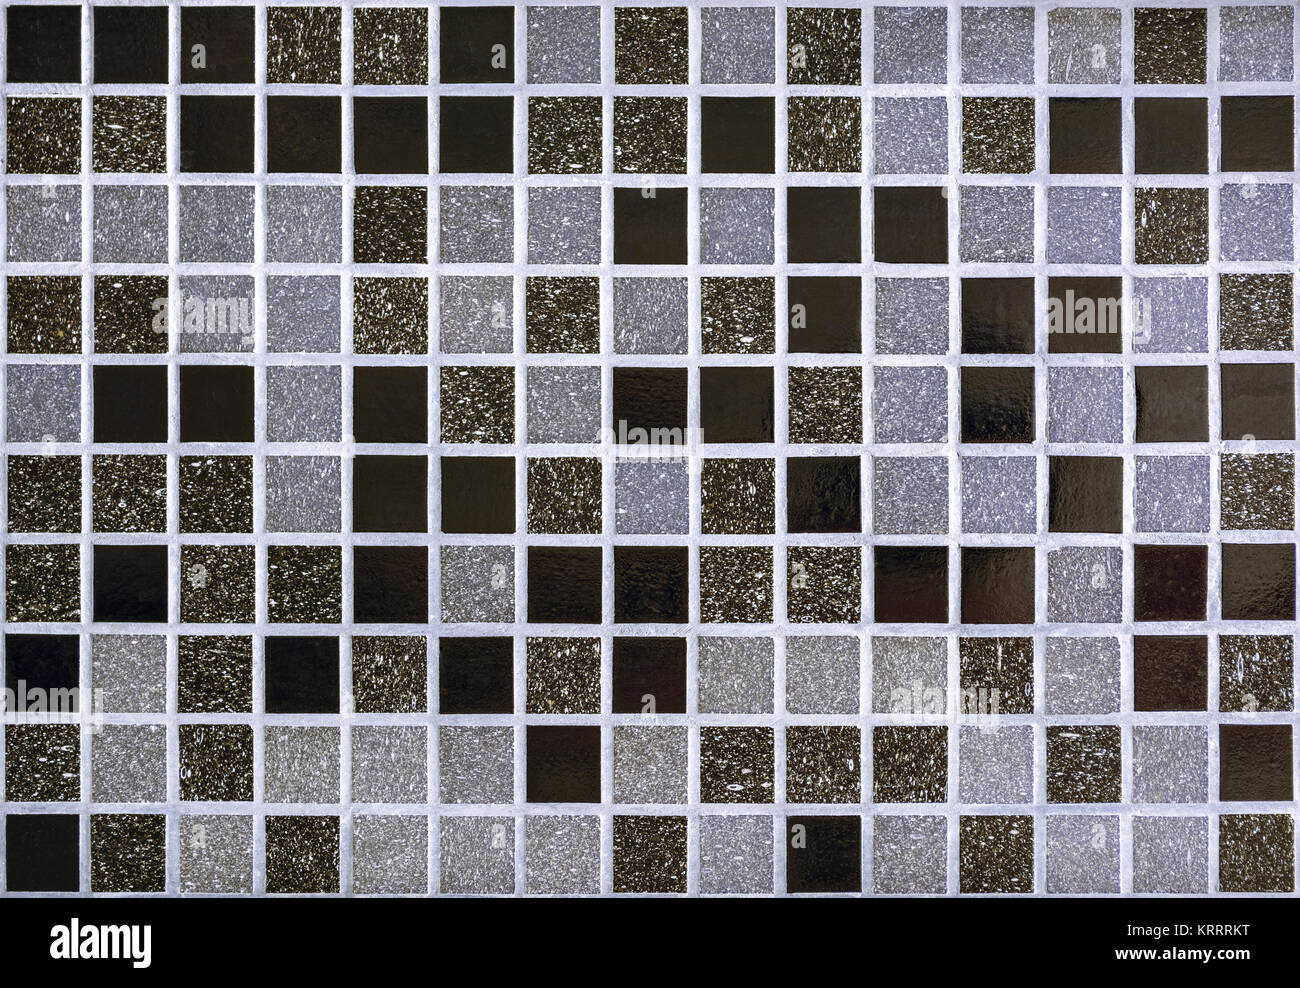 Part of the wall, lined with small mosaic tiles for use as a seamless backgrounds. Stock Photo